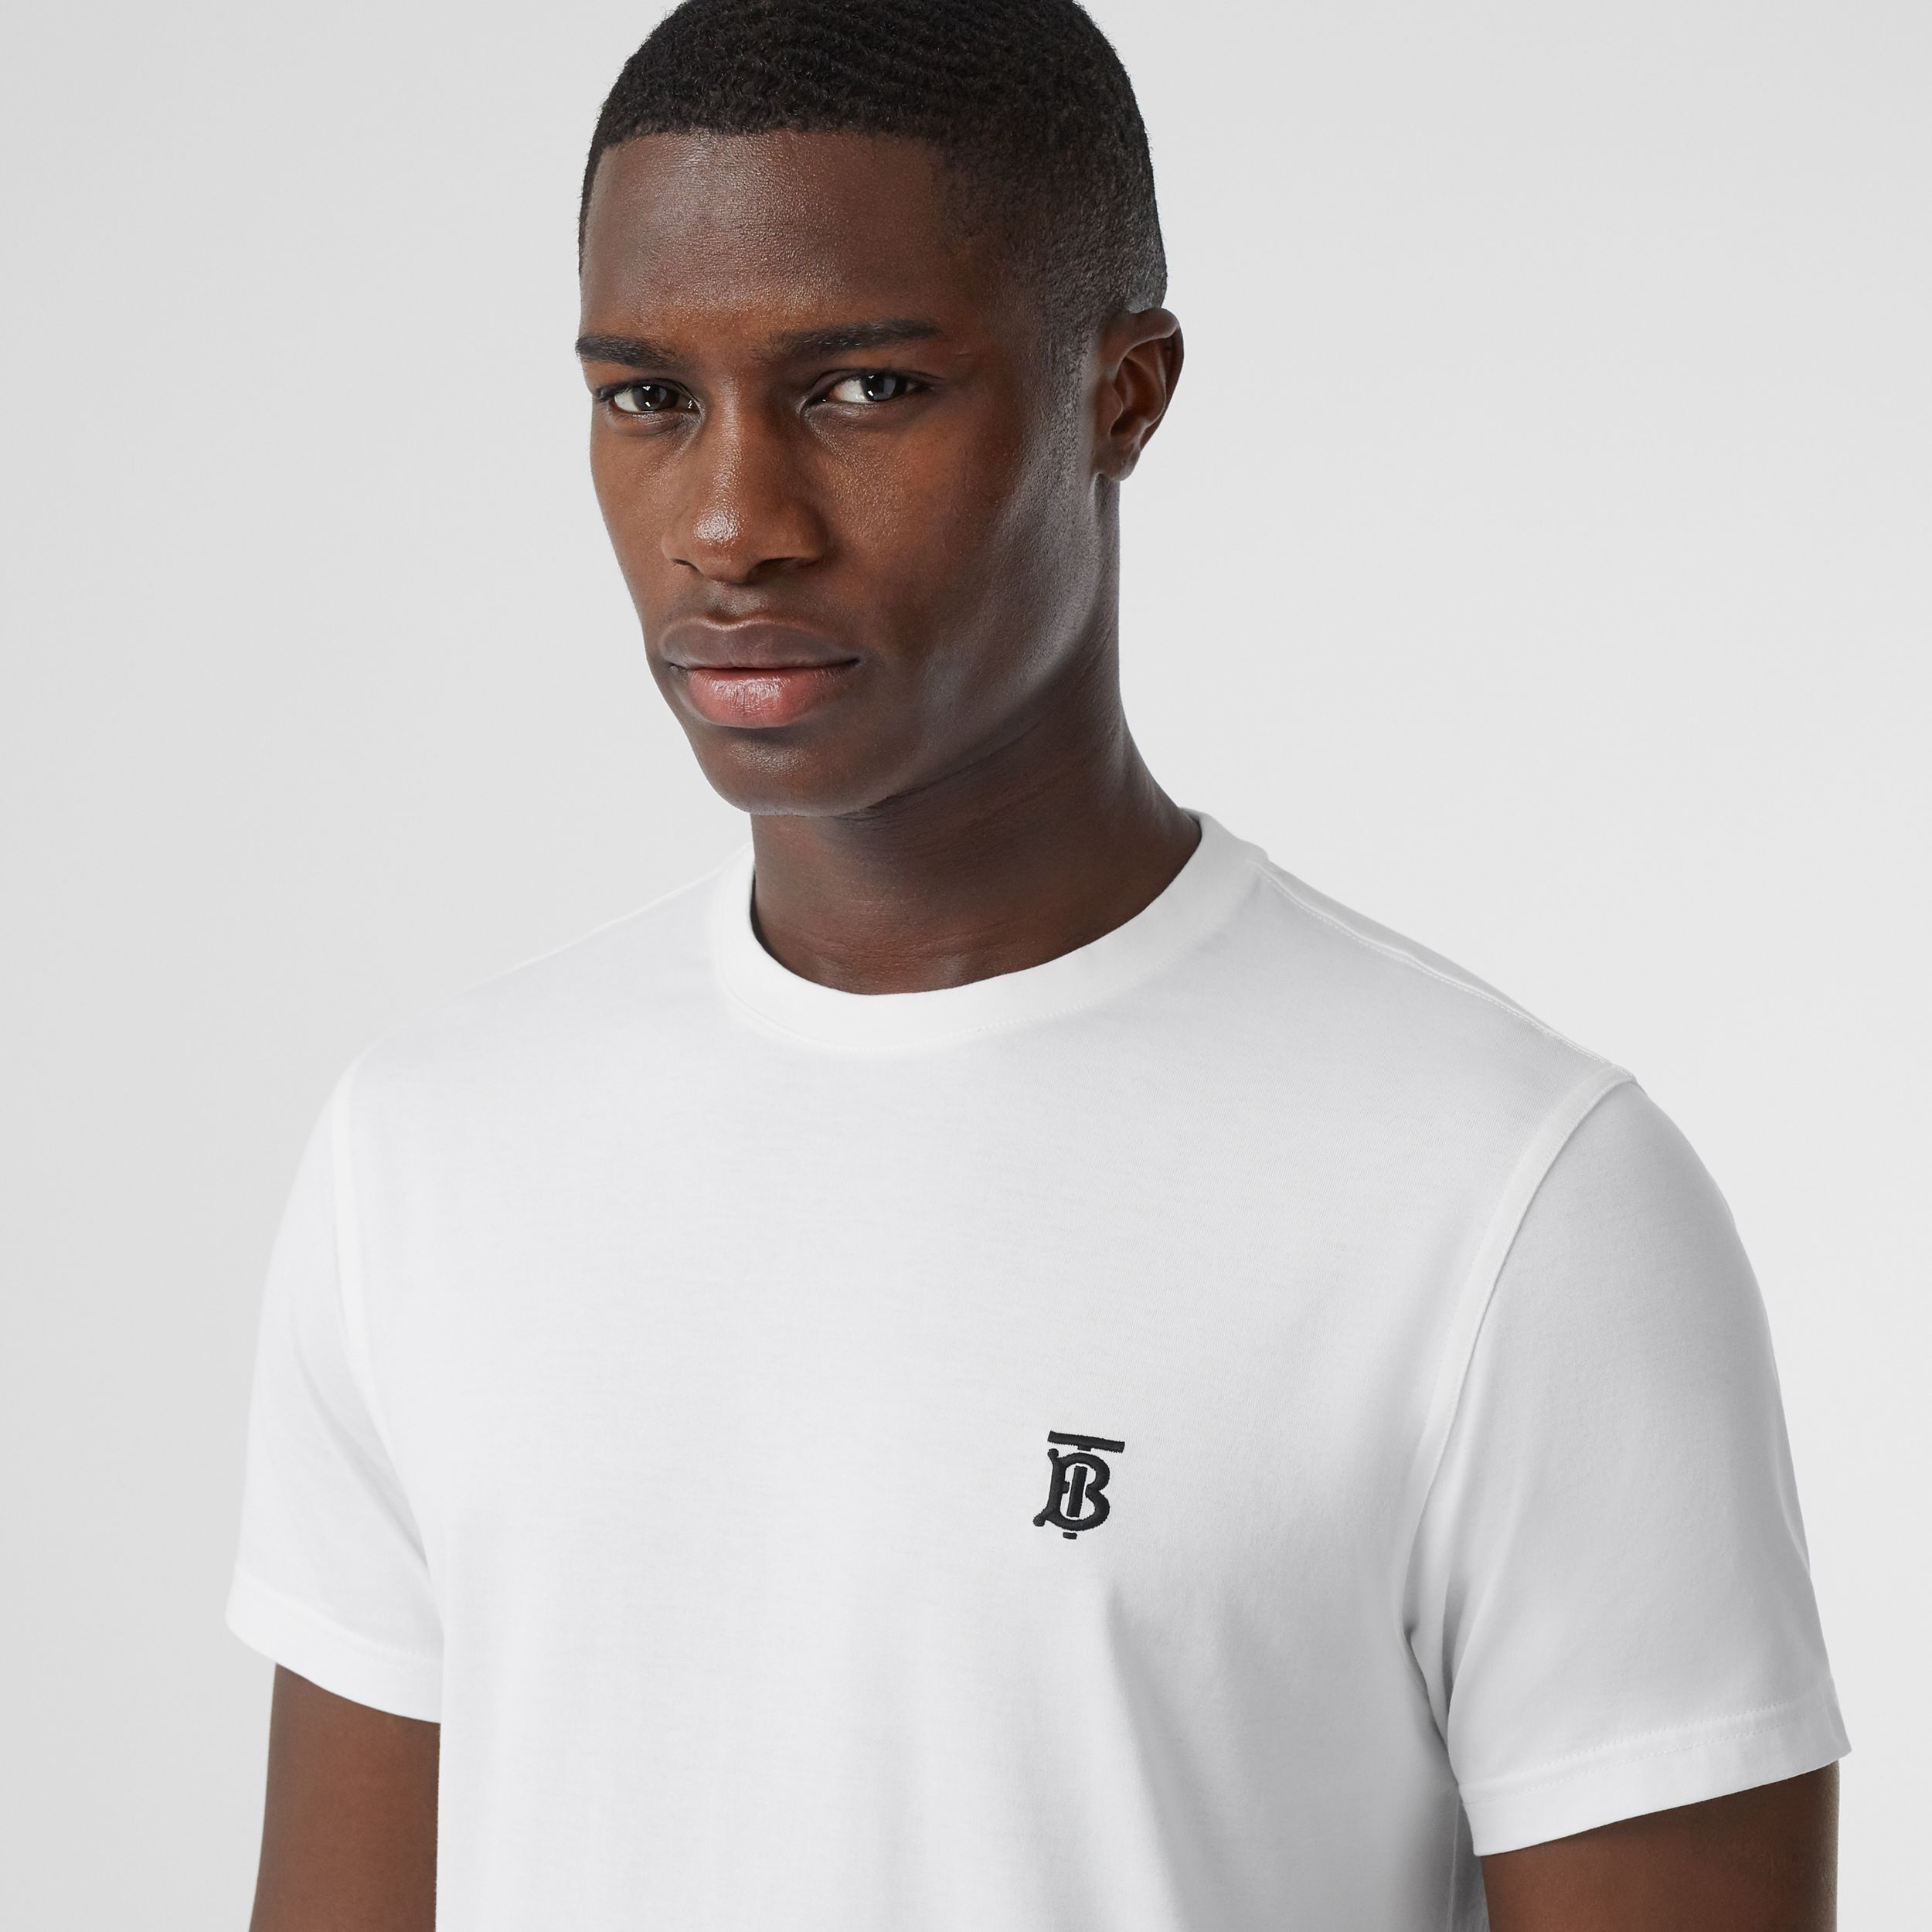 Monogram Motif Cotton T-shirt in White - Men | Burberry - 2